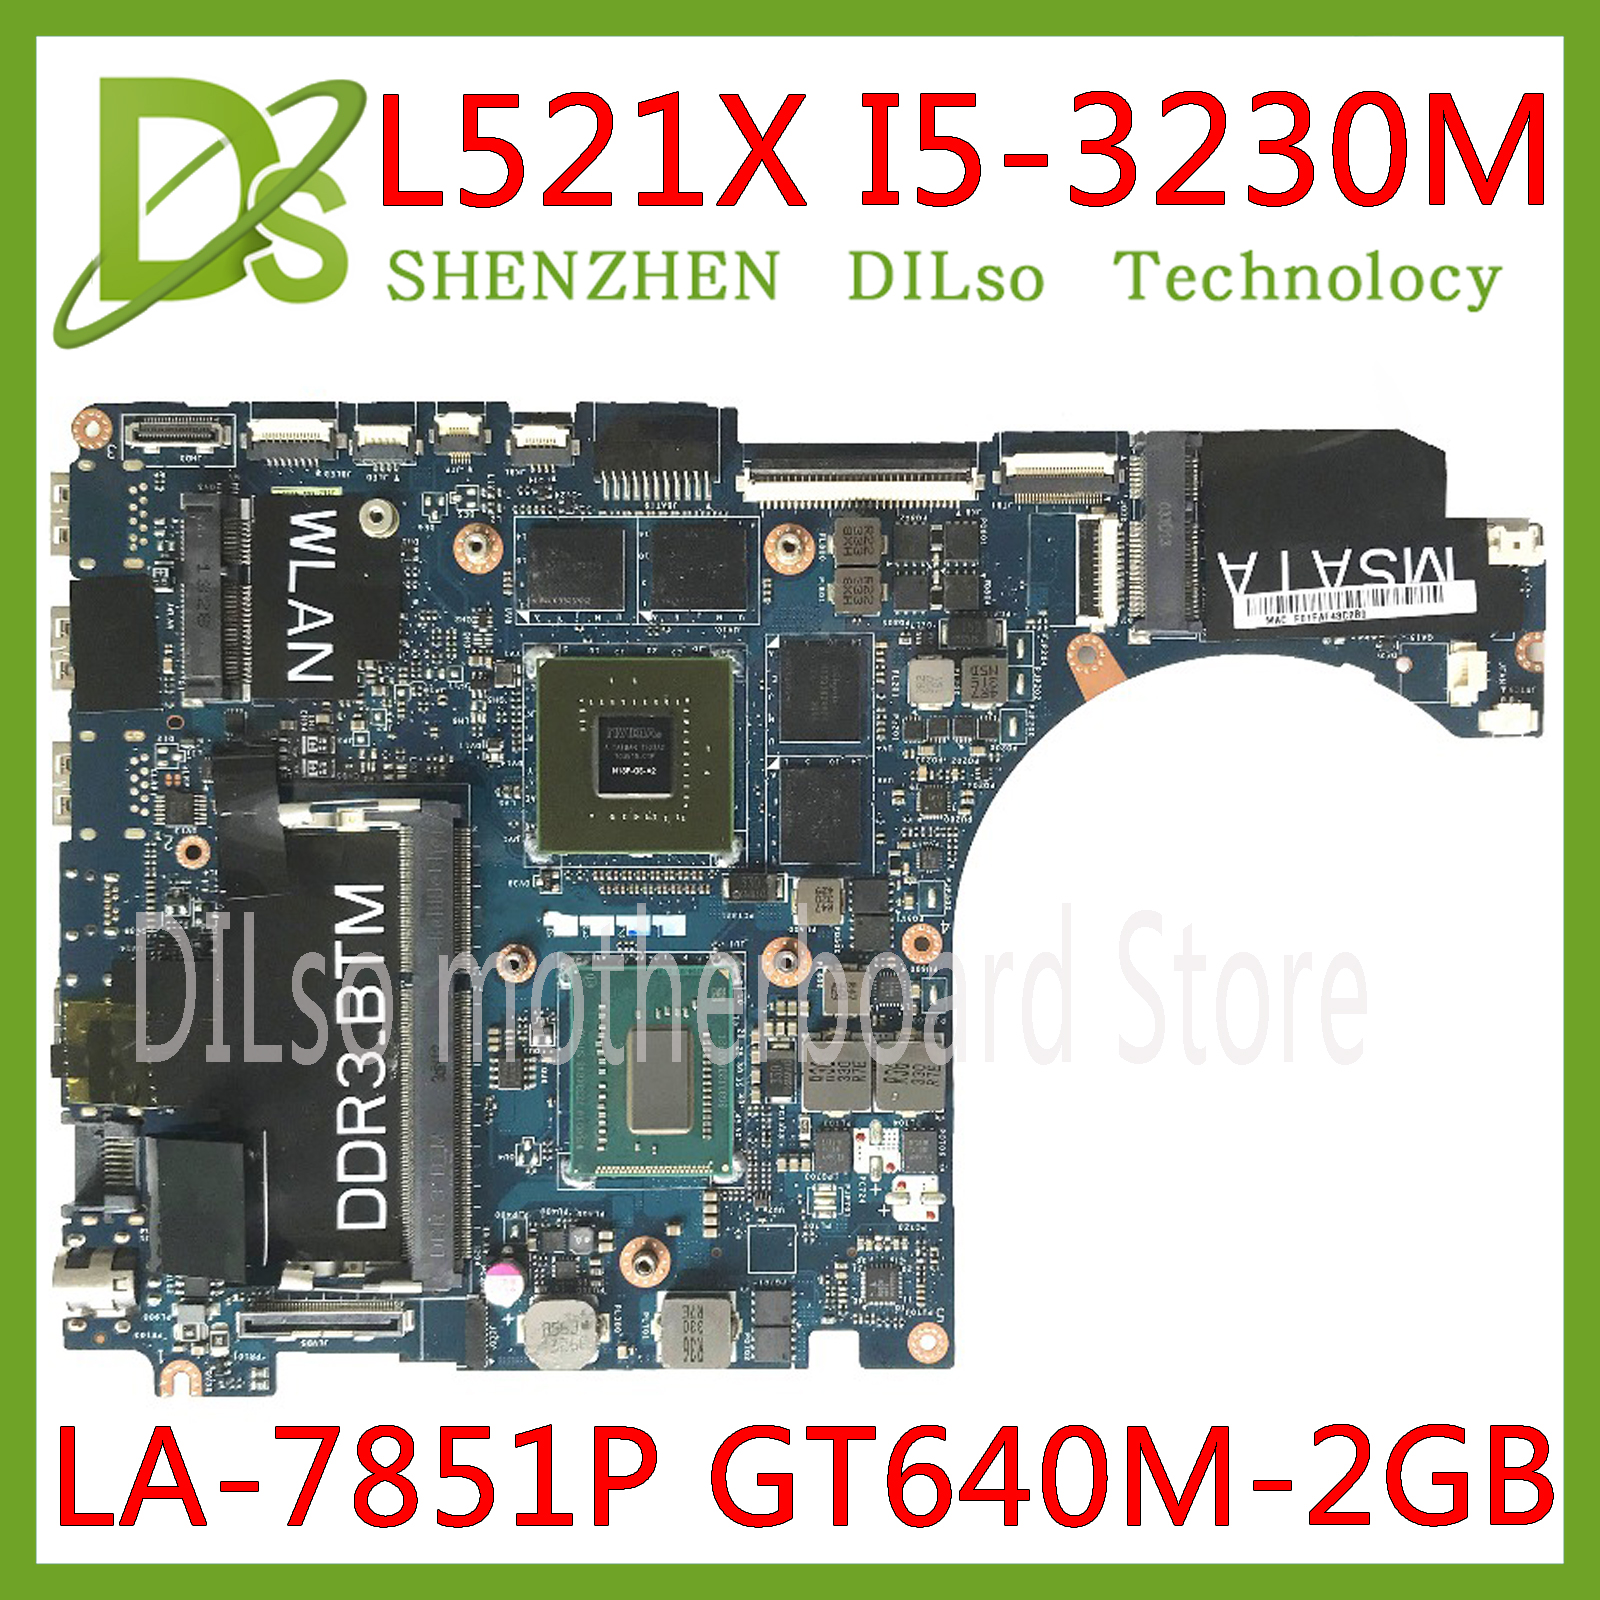 KEFU QBL00 LA-7851P motherboard FOR Dell XPS 15 L521X <font><b>Laptop</b></font> Motherboard <font><b>I5</b></font>-<font><b>3230M</b></font> DDR3L GT640M 2GB Fully Tested 100% work image